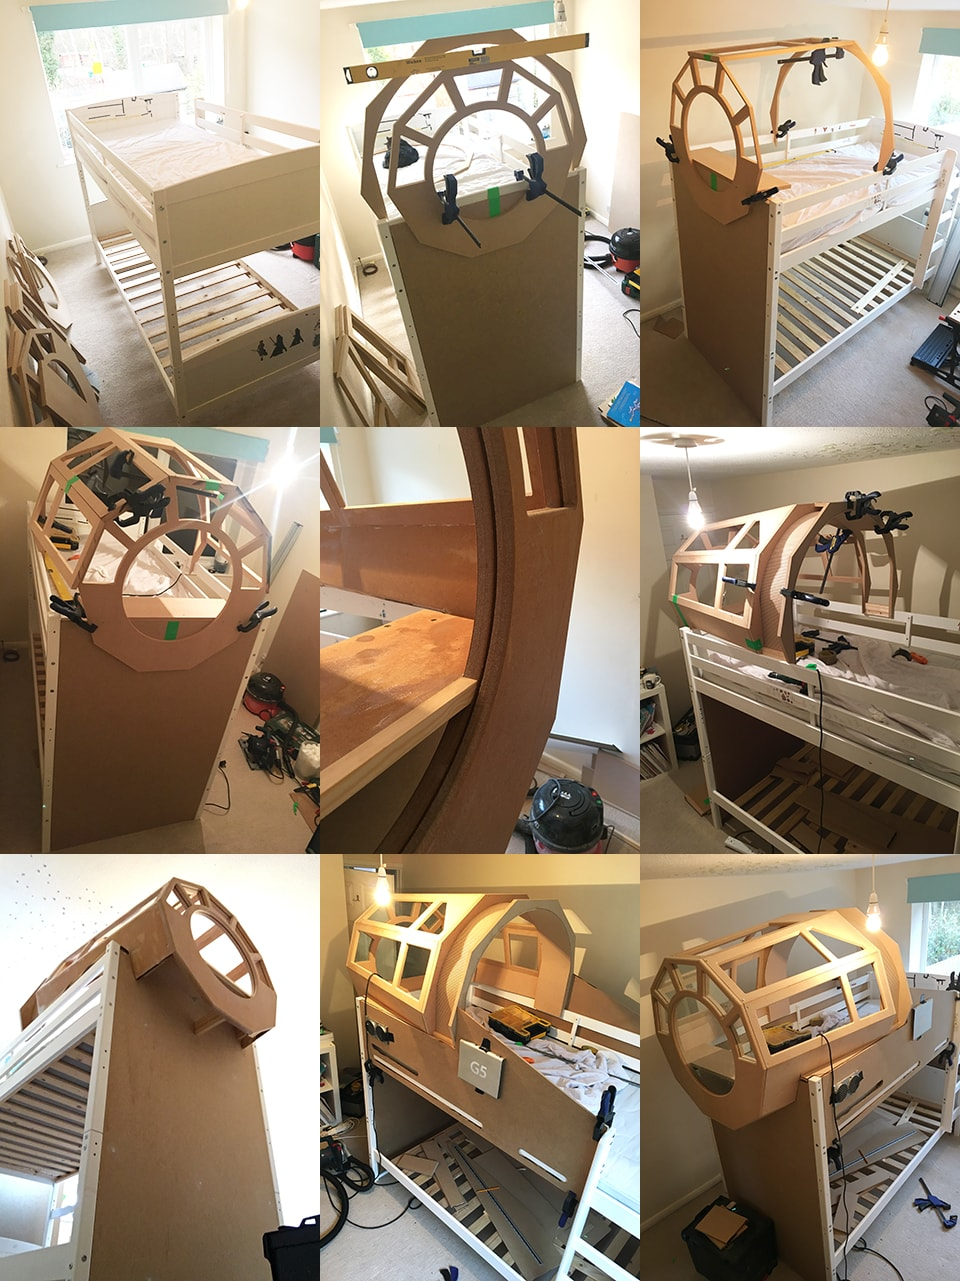 James Parry's Star Wars Bunk Bed Design - Construction Photos